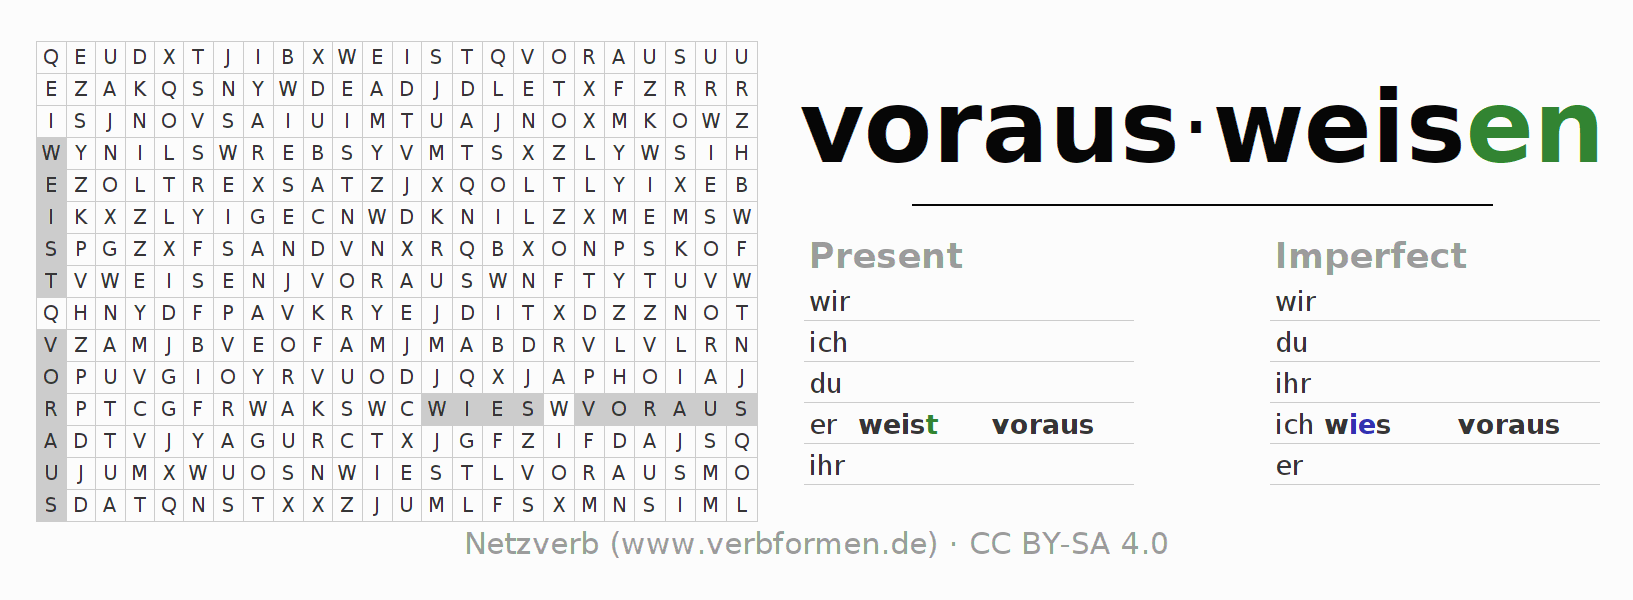 Word search puzzle for the conjugation of the verb vorausweisen